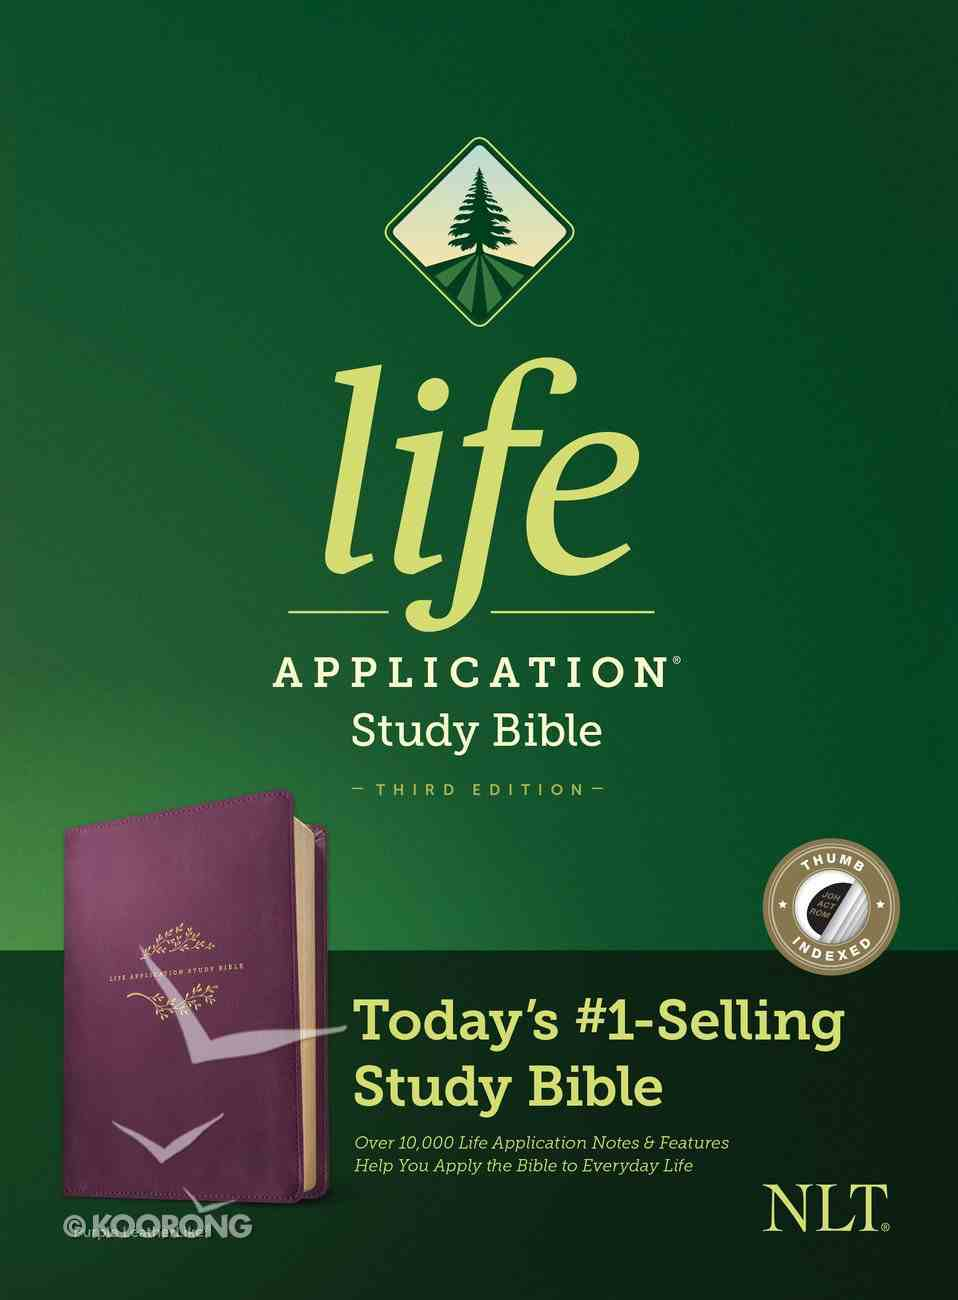 NLT Life Application Study Bible 3rd Edition Purple Indexed (Black Letter Edition) Imitation Leather